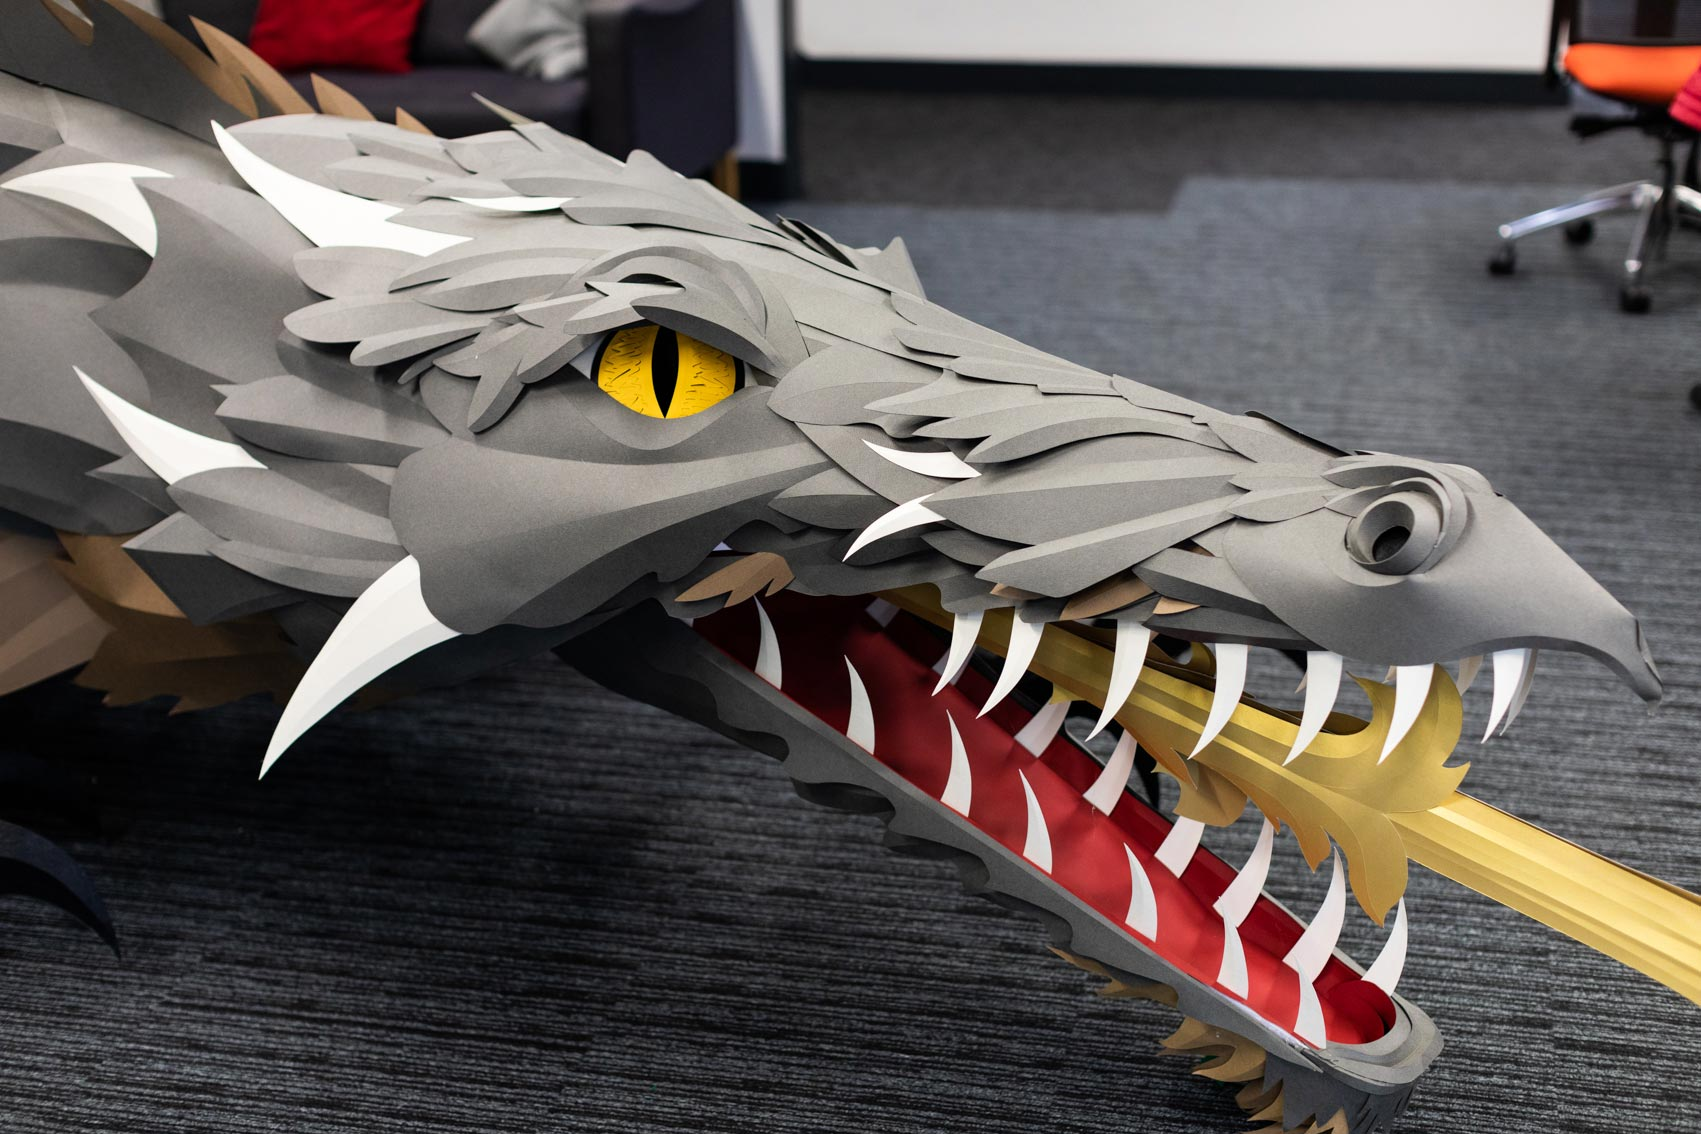 Viking Direct Gears up for 'Game of Thrones' Premiere with a Giant Fire-Breathing Dragon Made of Paper by Andy Singleton